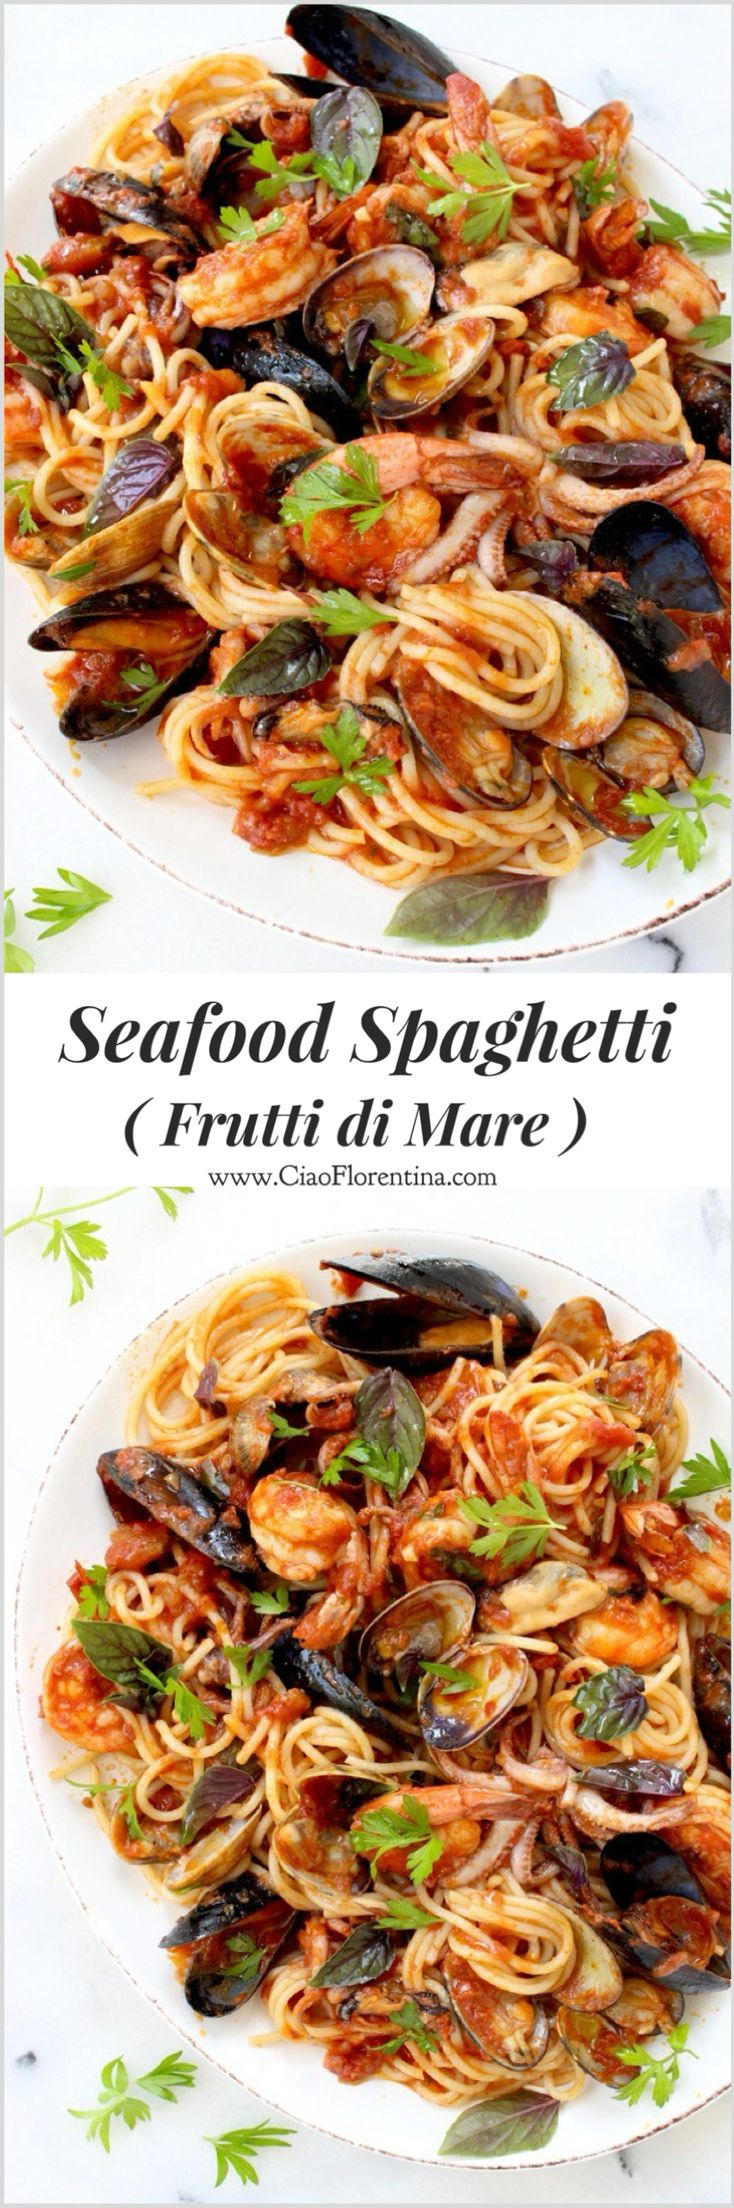 Photo of Frutti di Mare Recipe ( Seafood Spaghetti ) • CiaoFlorentina